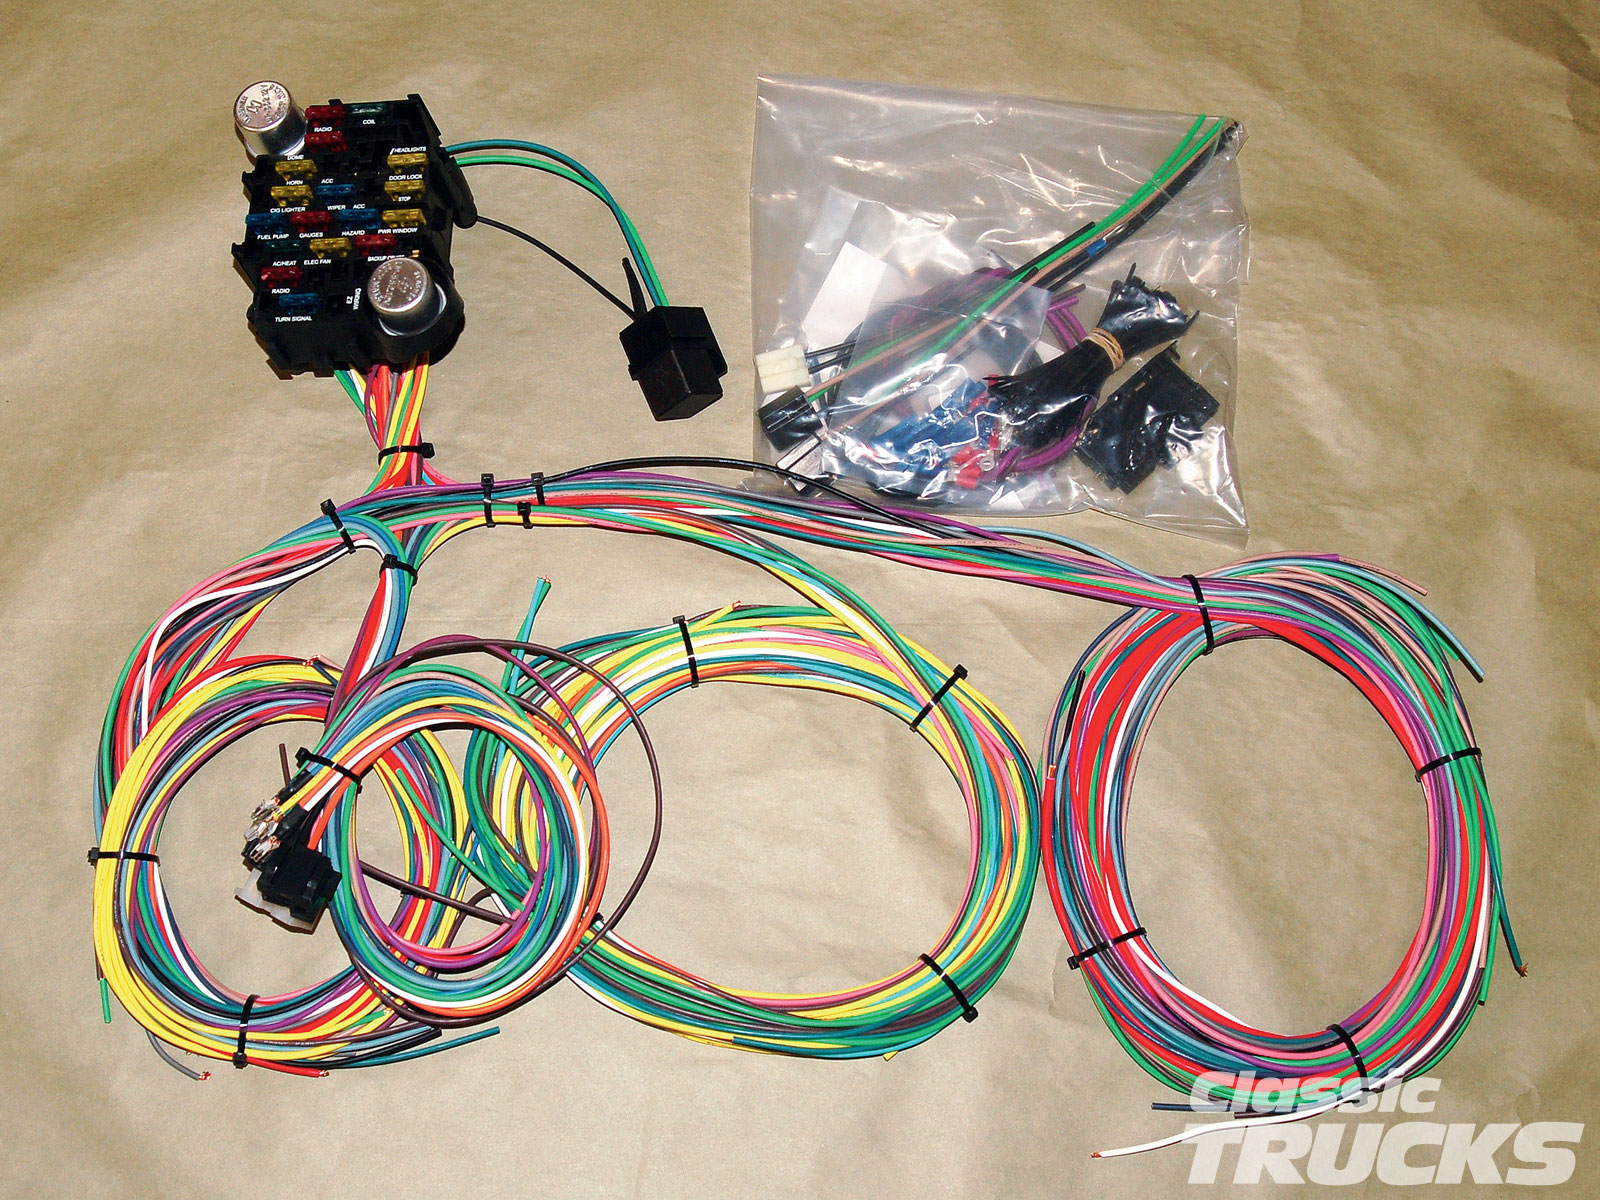 1010clt 02 o aftermarket wiring harness install kit?resize=640%2C480 how much does a wire harness cost to replace hobbiesxstyle how much does it cost to replace a wiring harness at arjmand.co